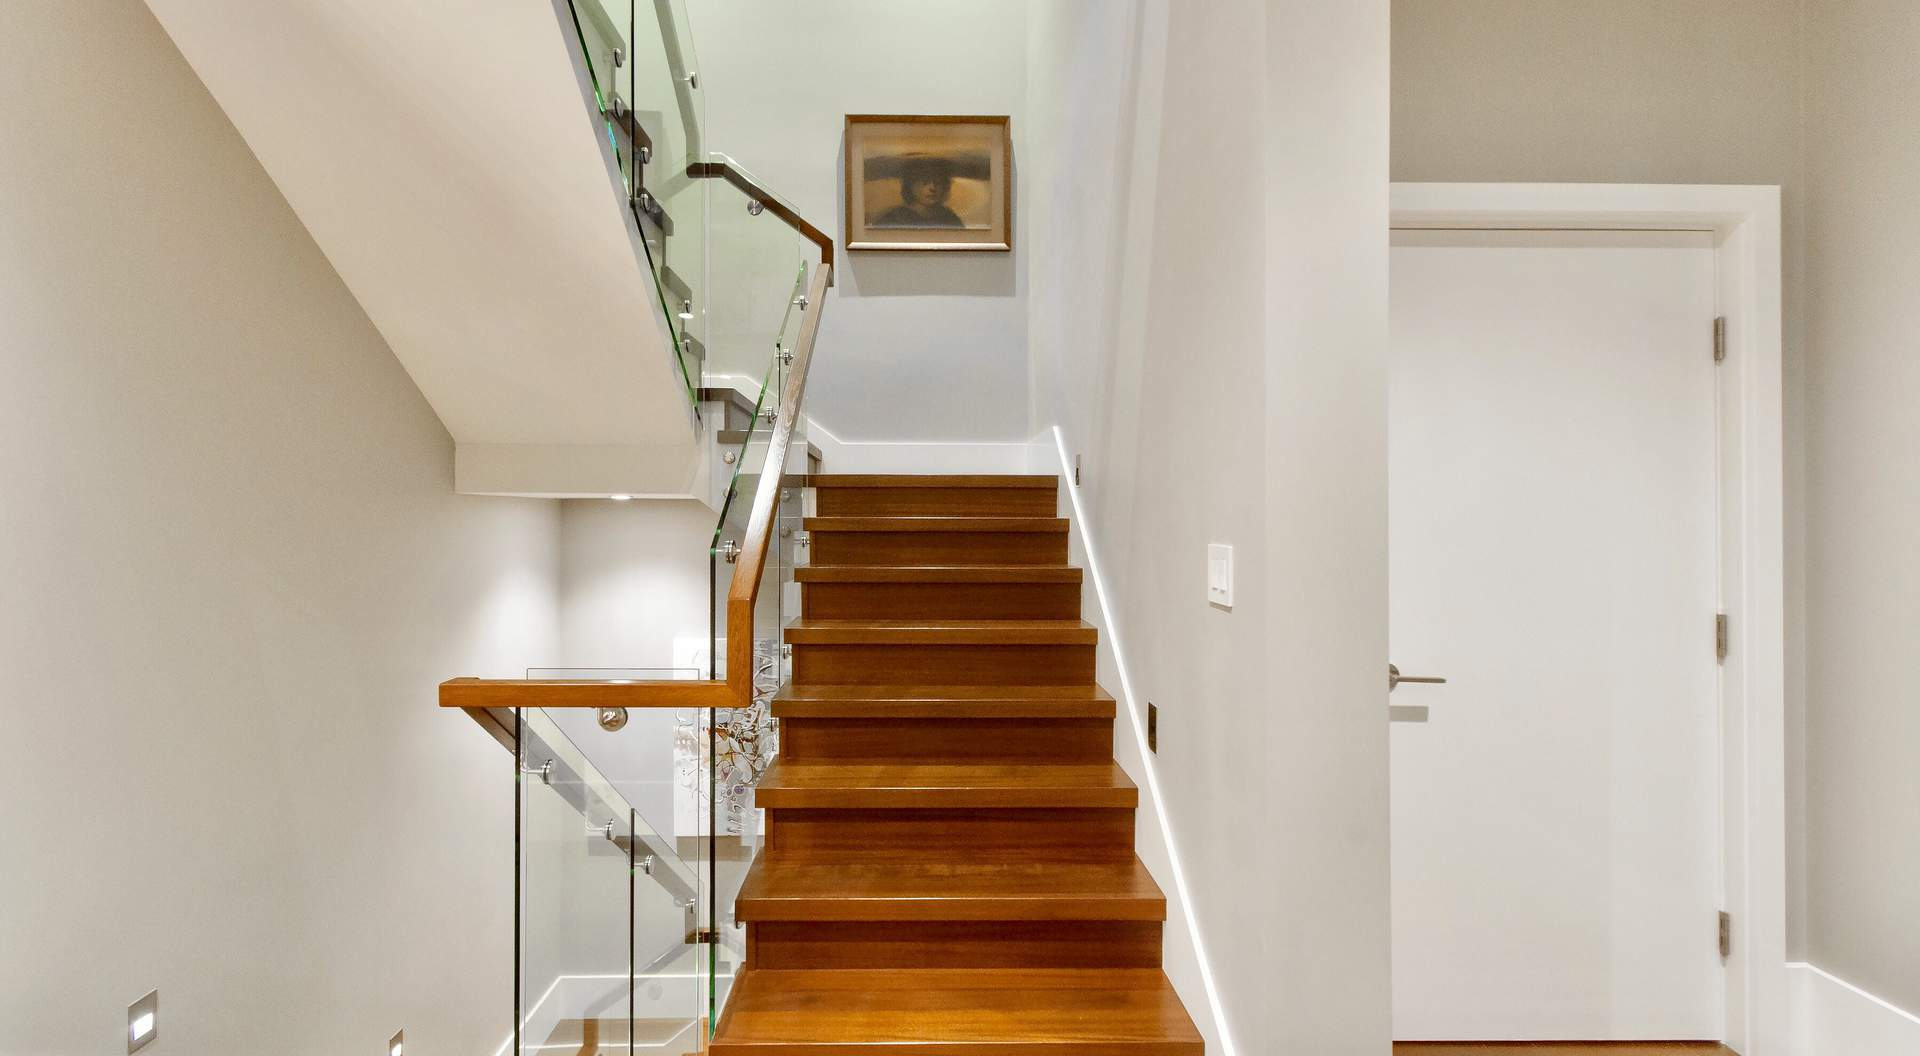 Contemporary stair design, wood treads and risers with modern glass railings and wood hand rail